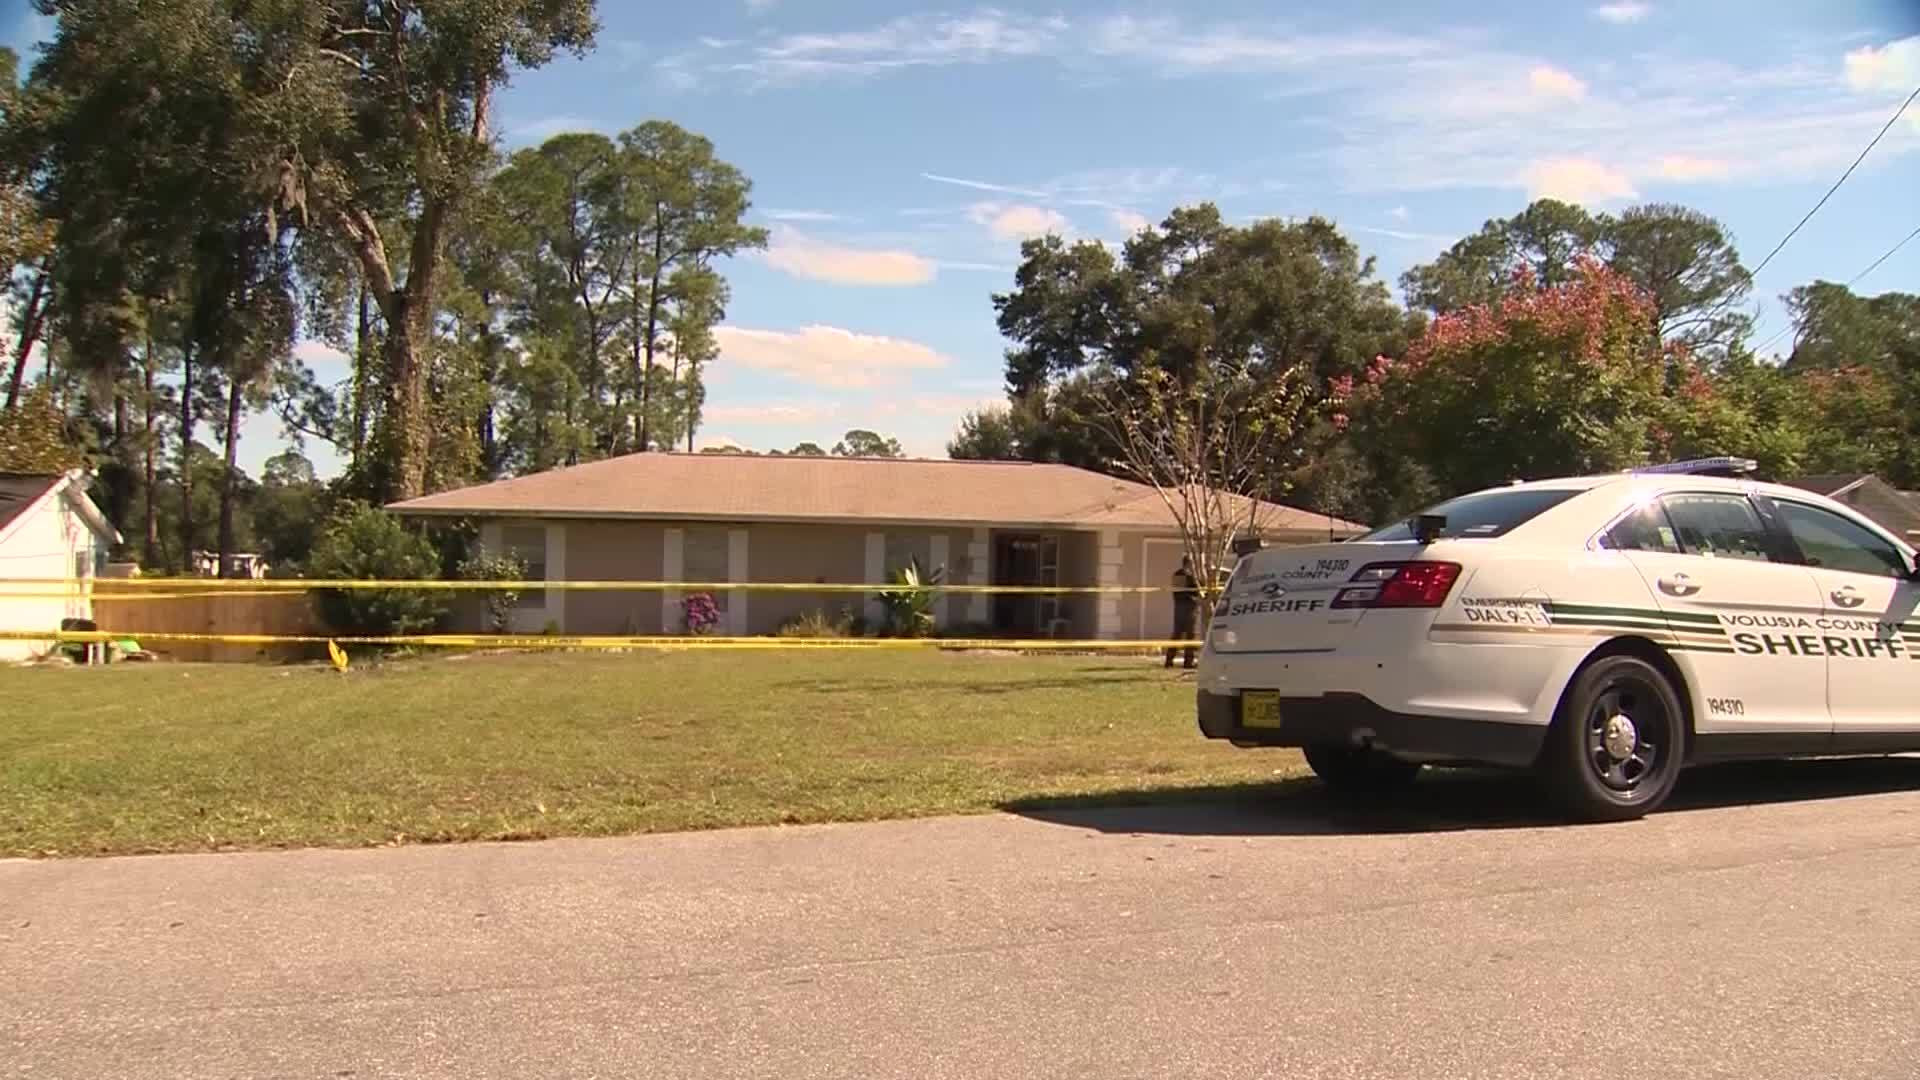 Teen kills mom after arguing over grades